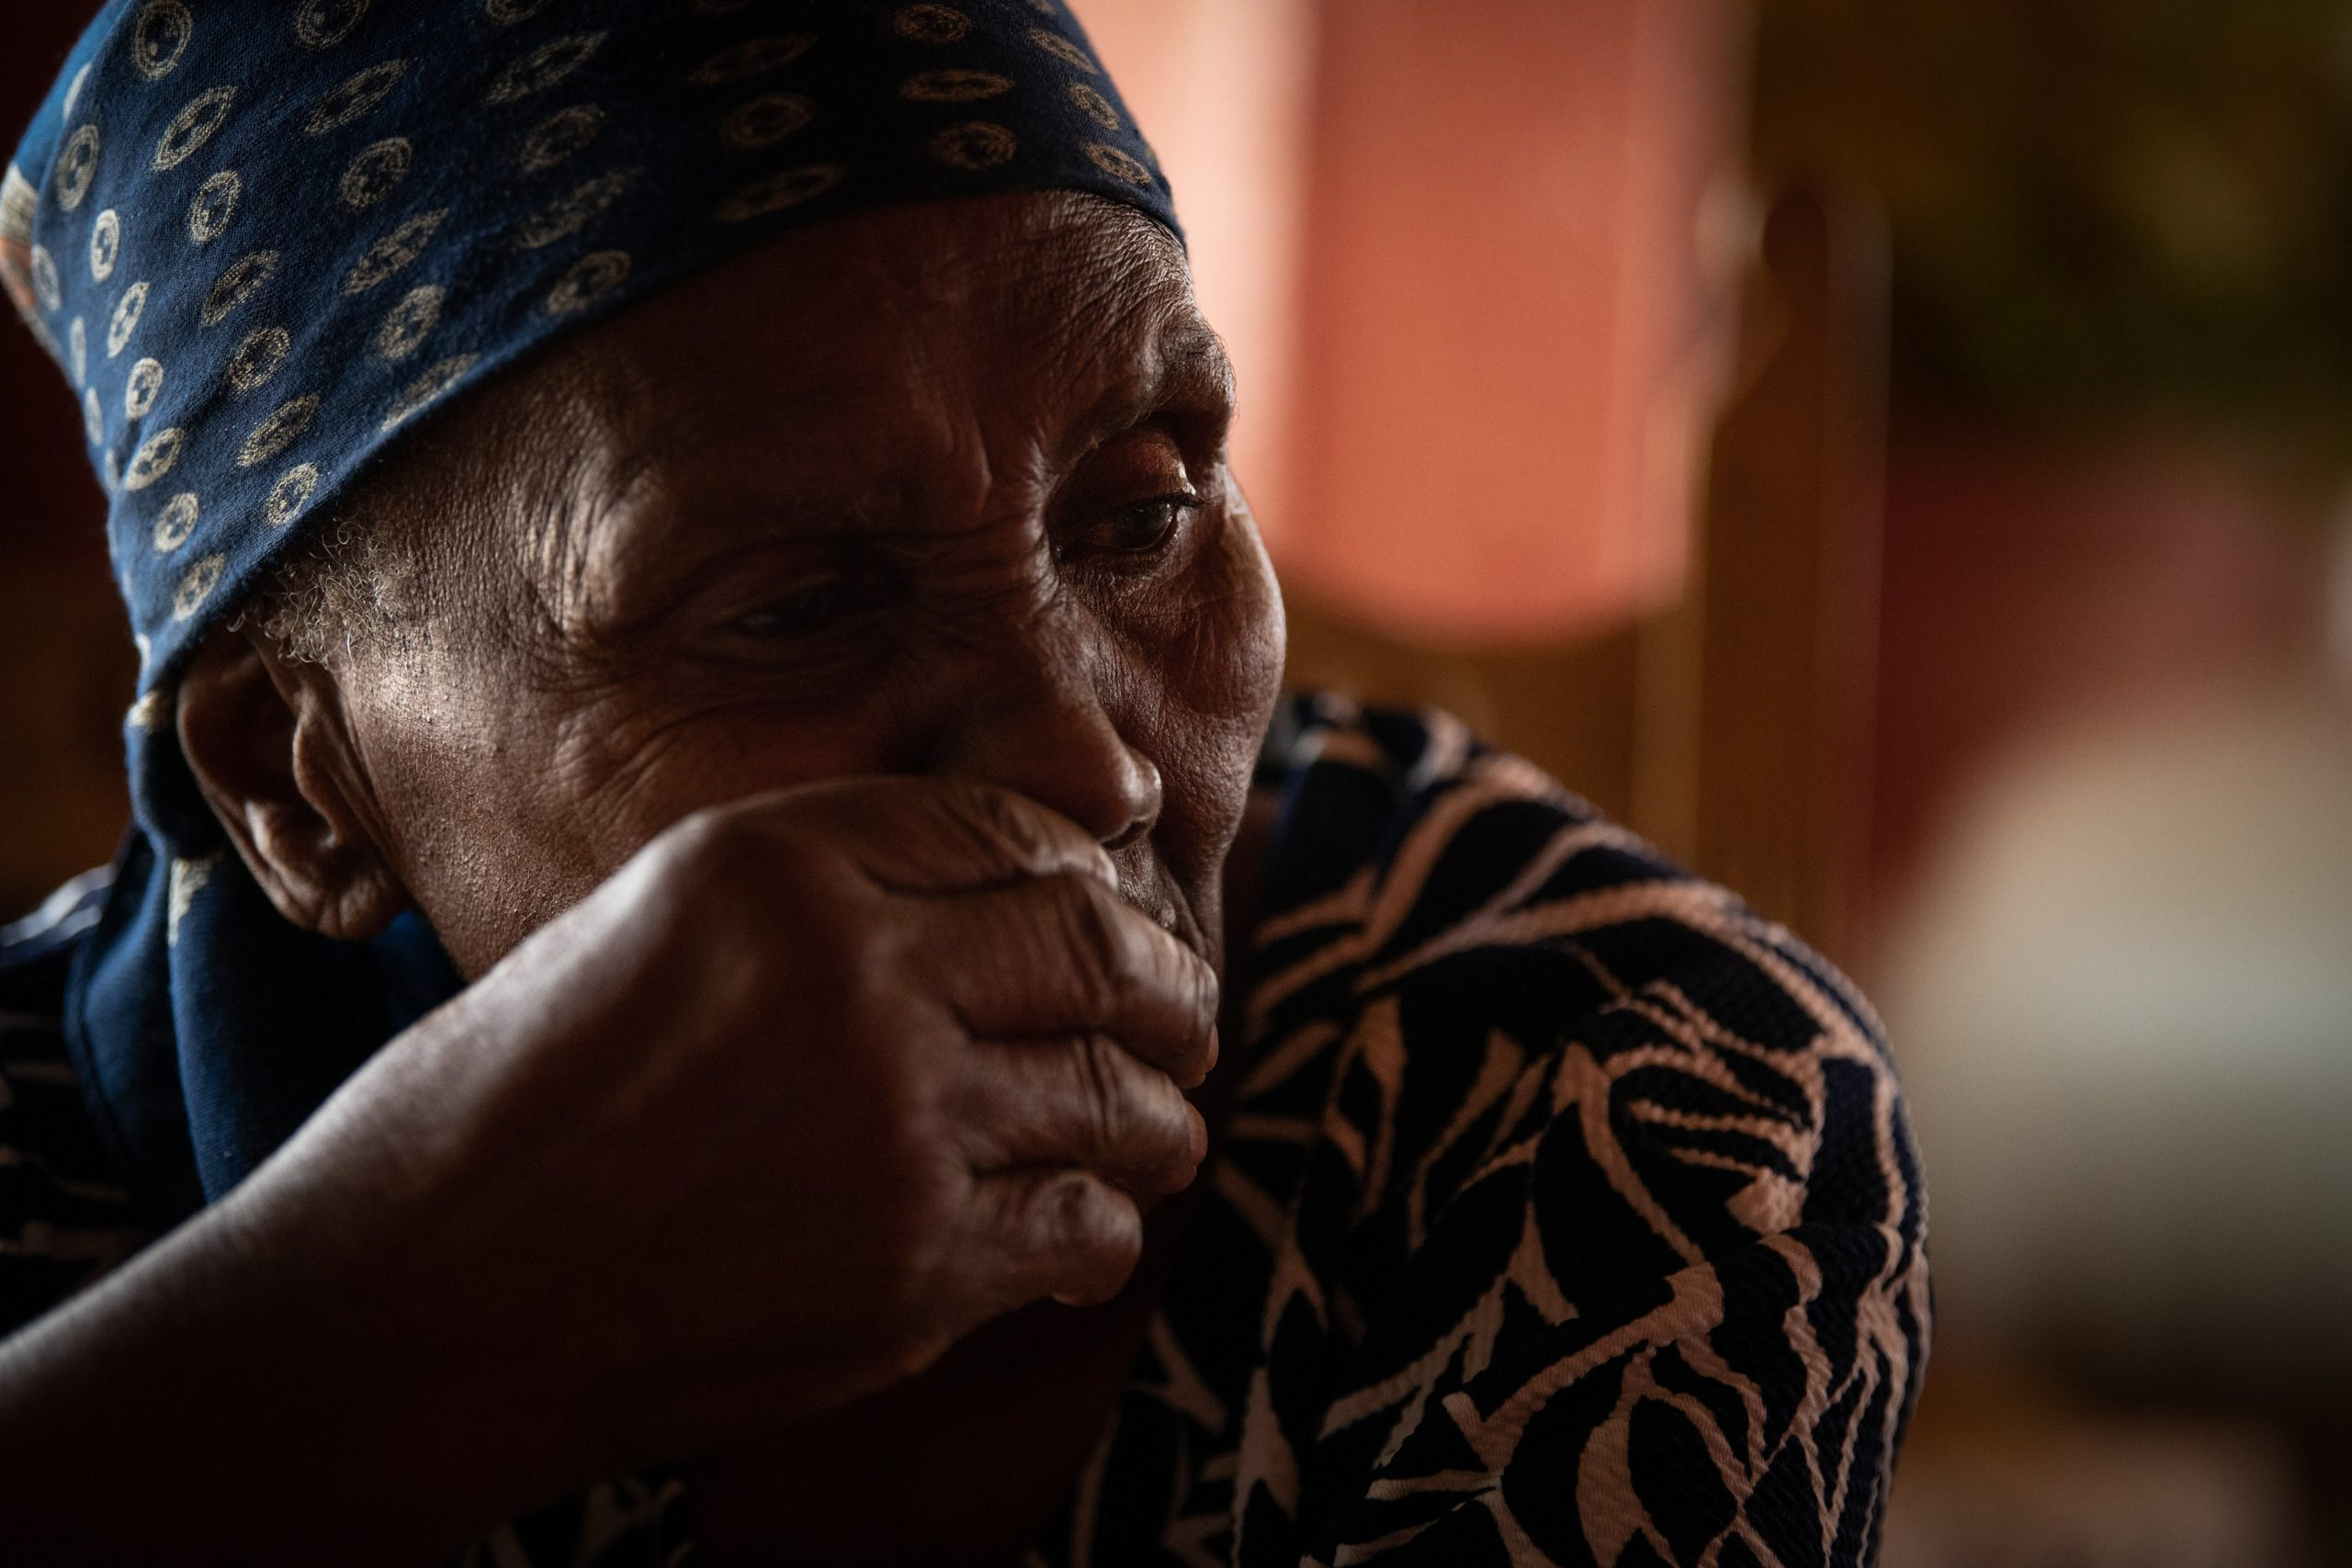 3 December 2019: Catherine Hlatshwayo has lived in the house in Mamelodi near her brother's final resting place for decades.